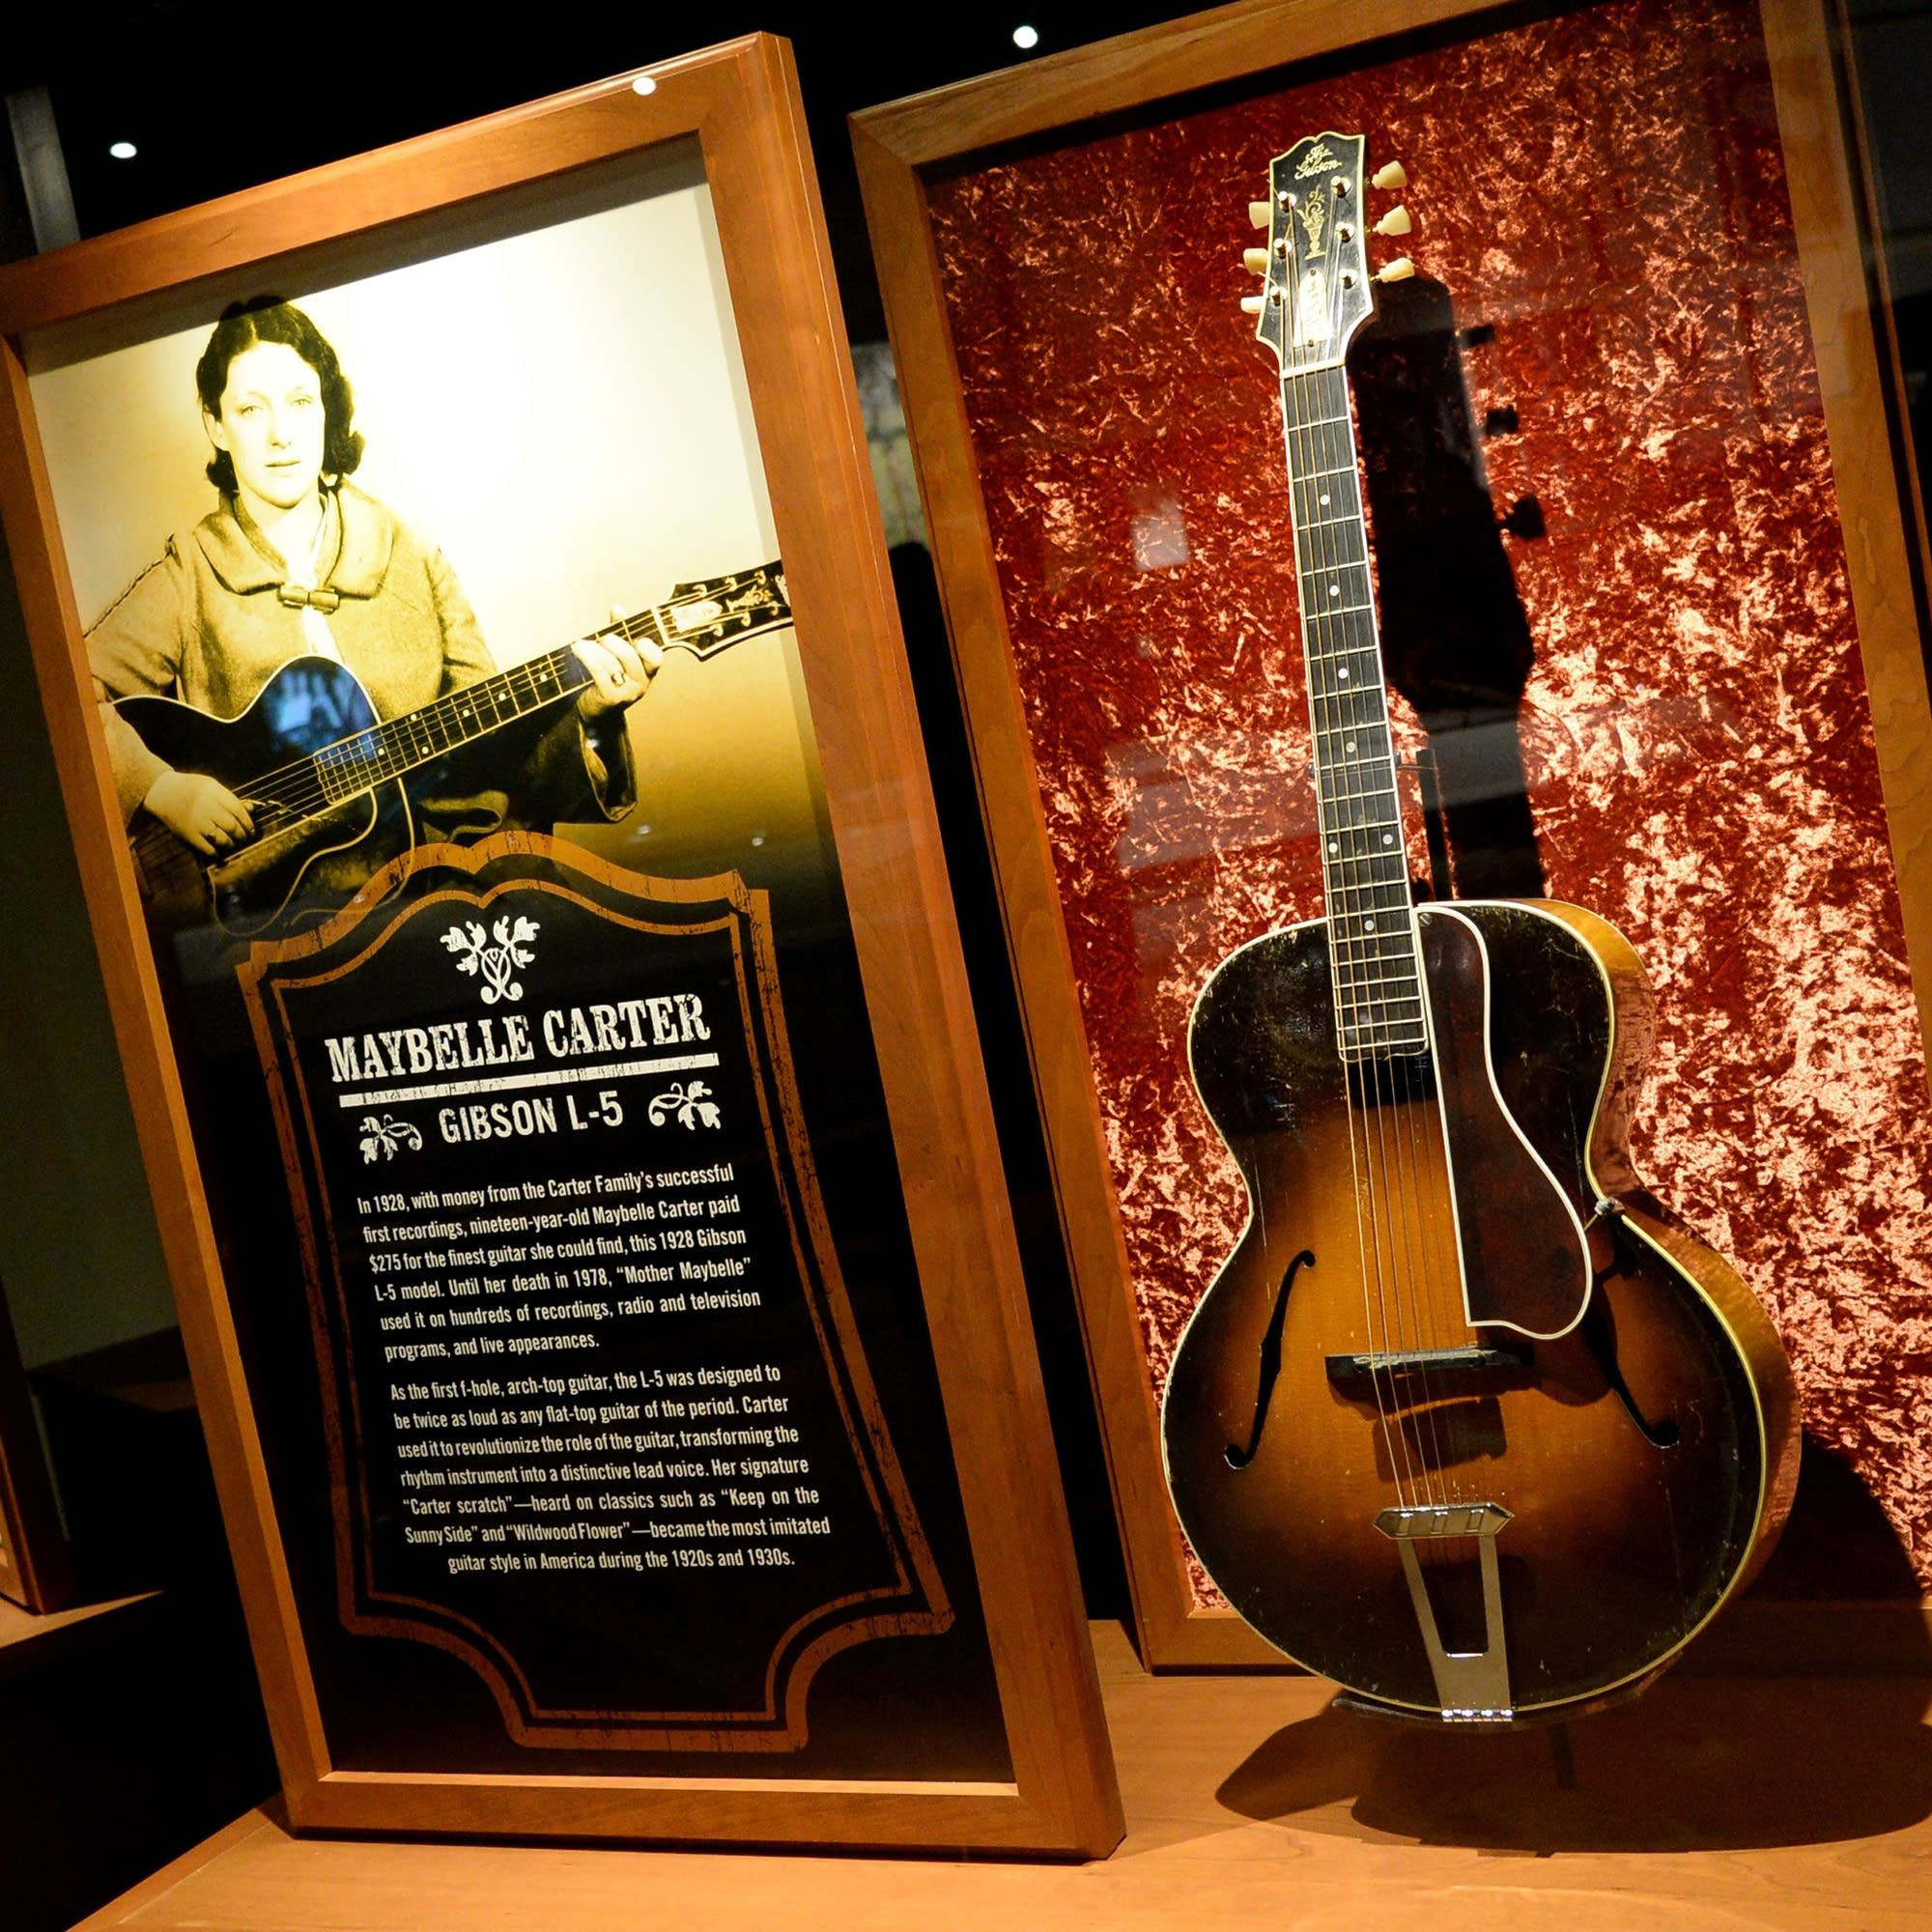 Maybelle Carter exhibit at the Country Music Hall of Fame and Museum